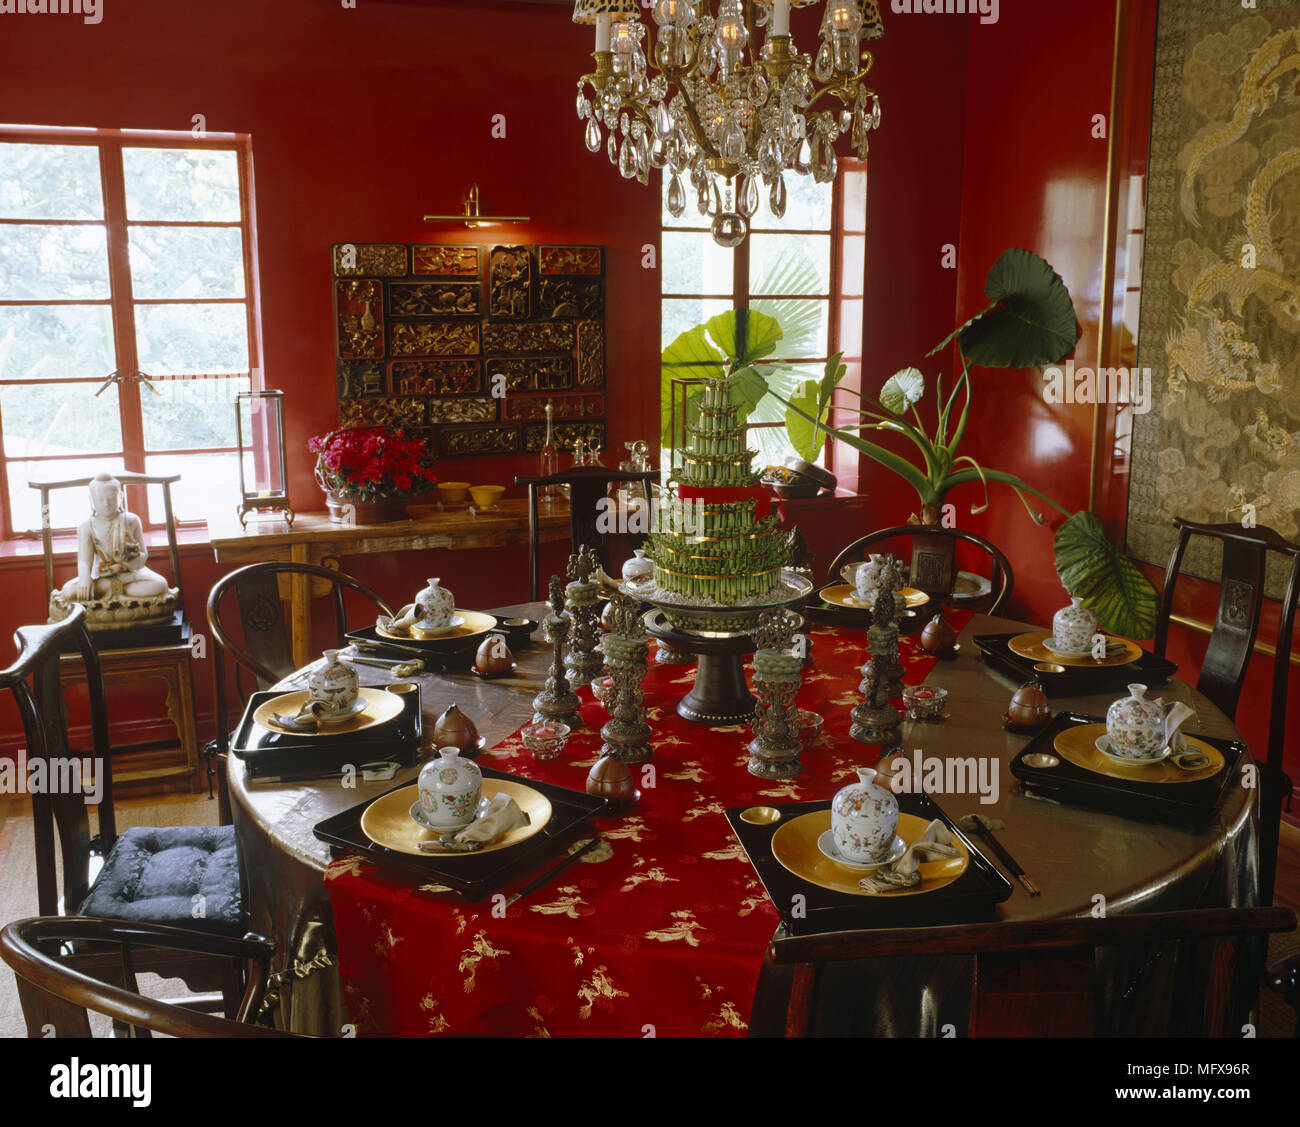 Chandelier Suspended Over Table Set In An Oriental Style For Dinner Party Red Dining Room